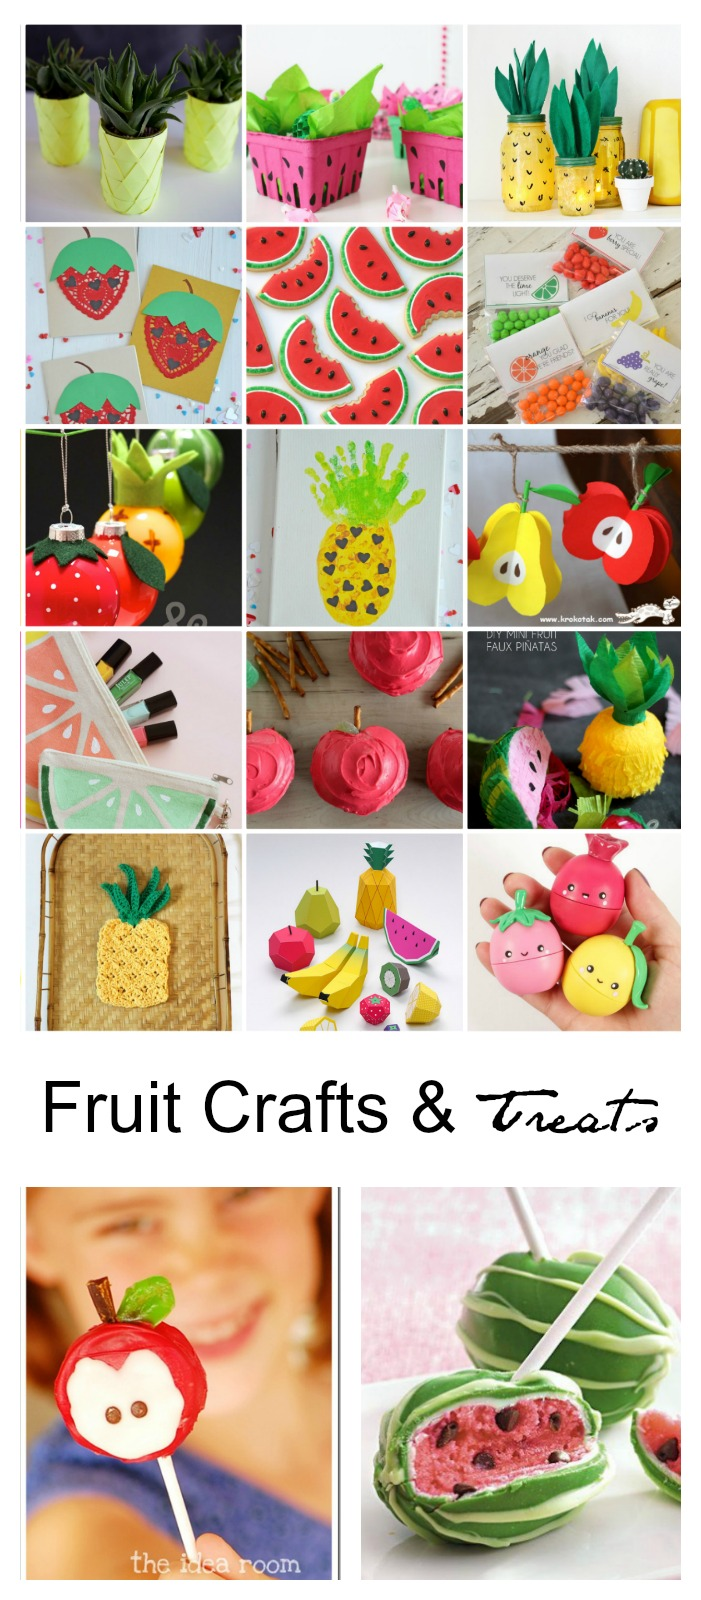 Fruit-Treats-Crafts-Treats-Pin